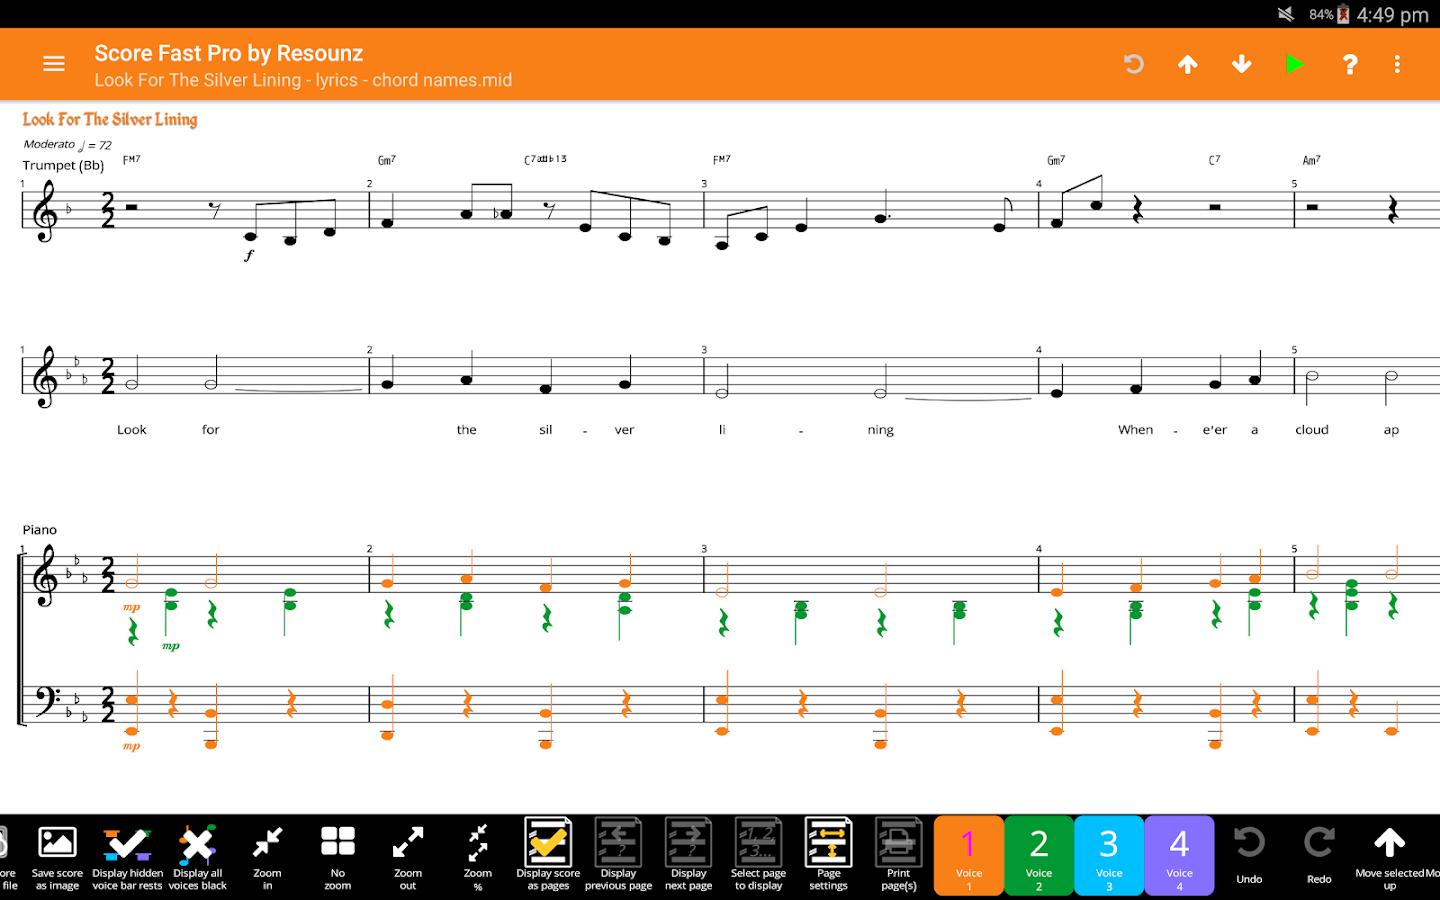 Score Fast Pro: compose, notate, play, print music- screenshot